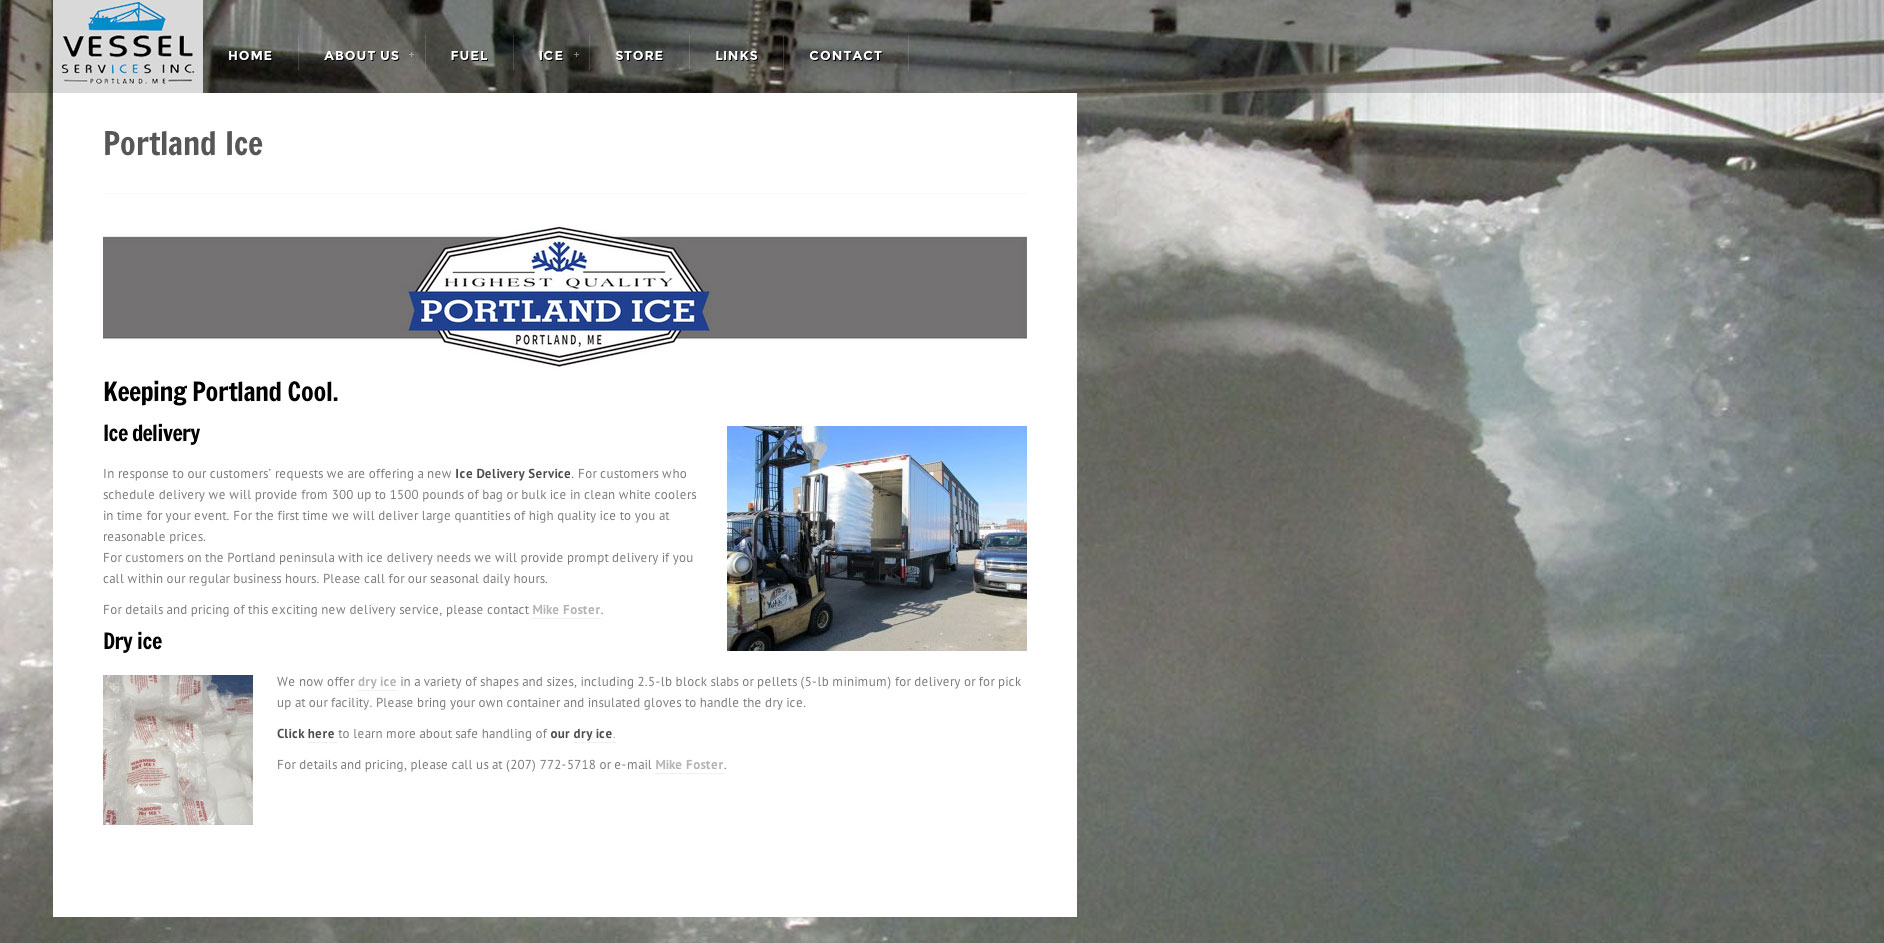 Vessel Services Website Ice Services Page